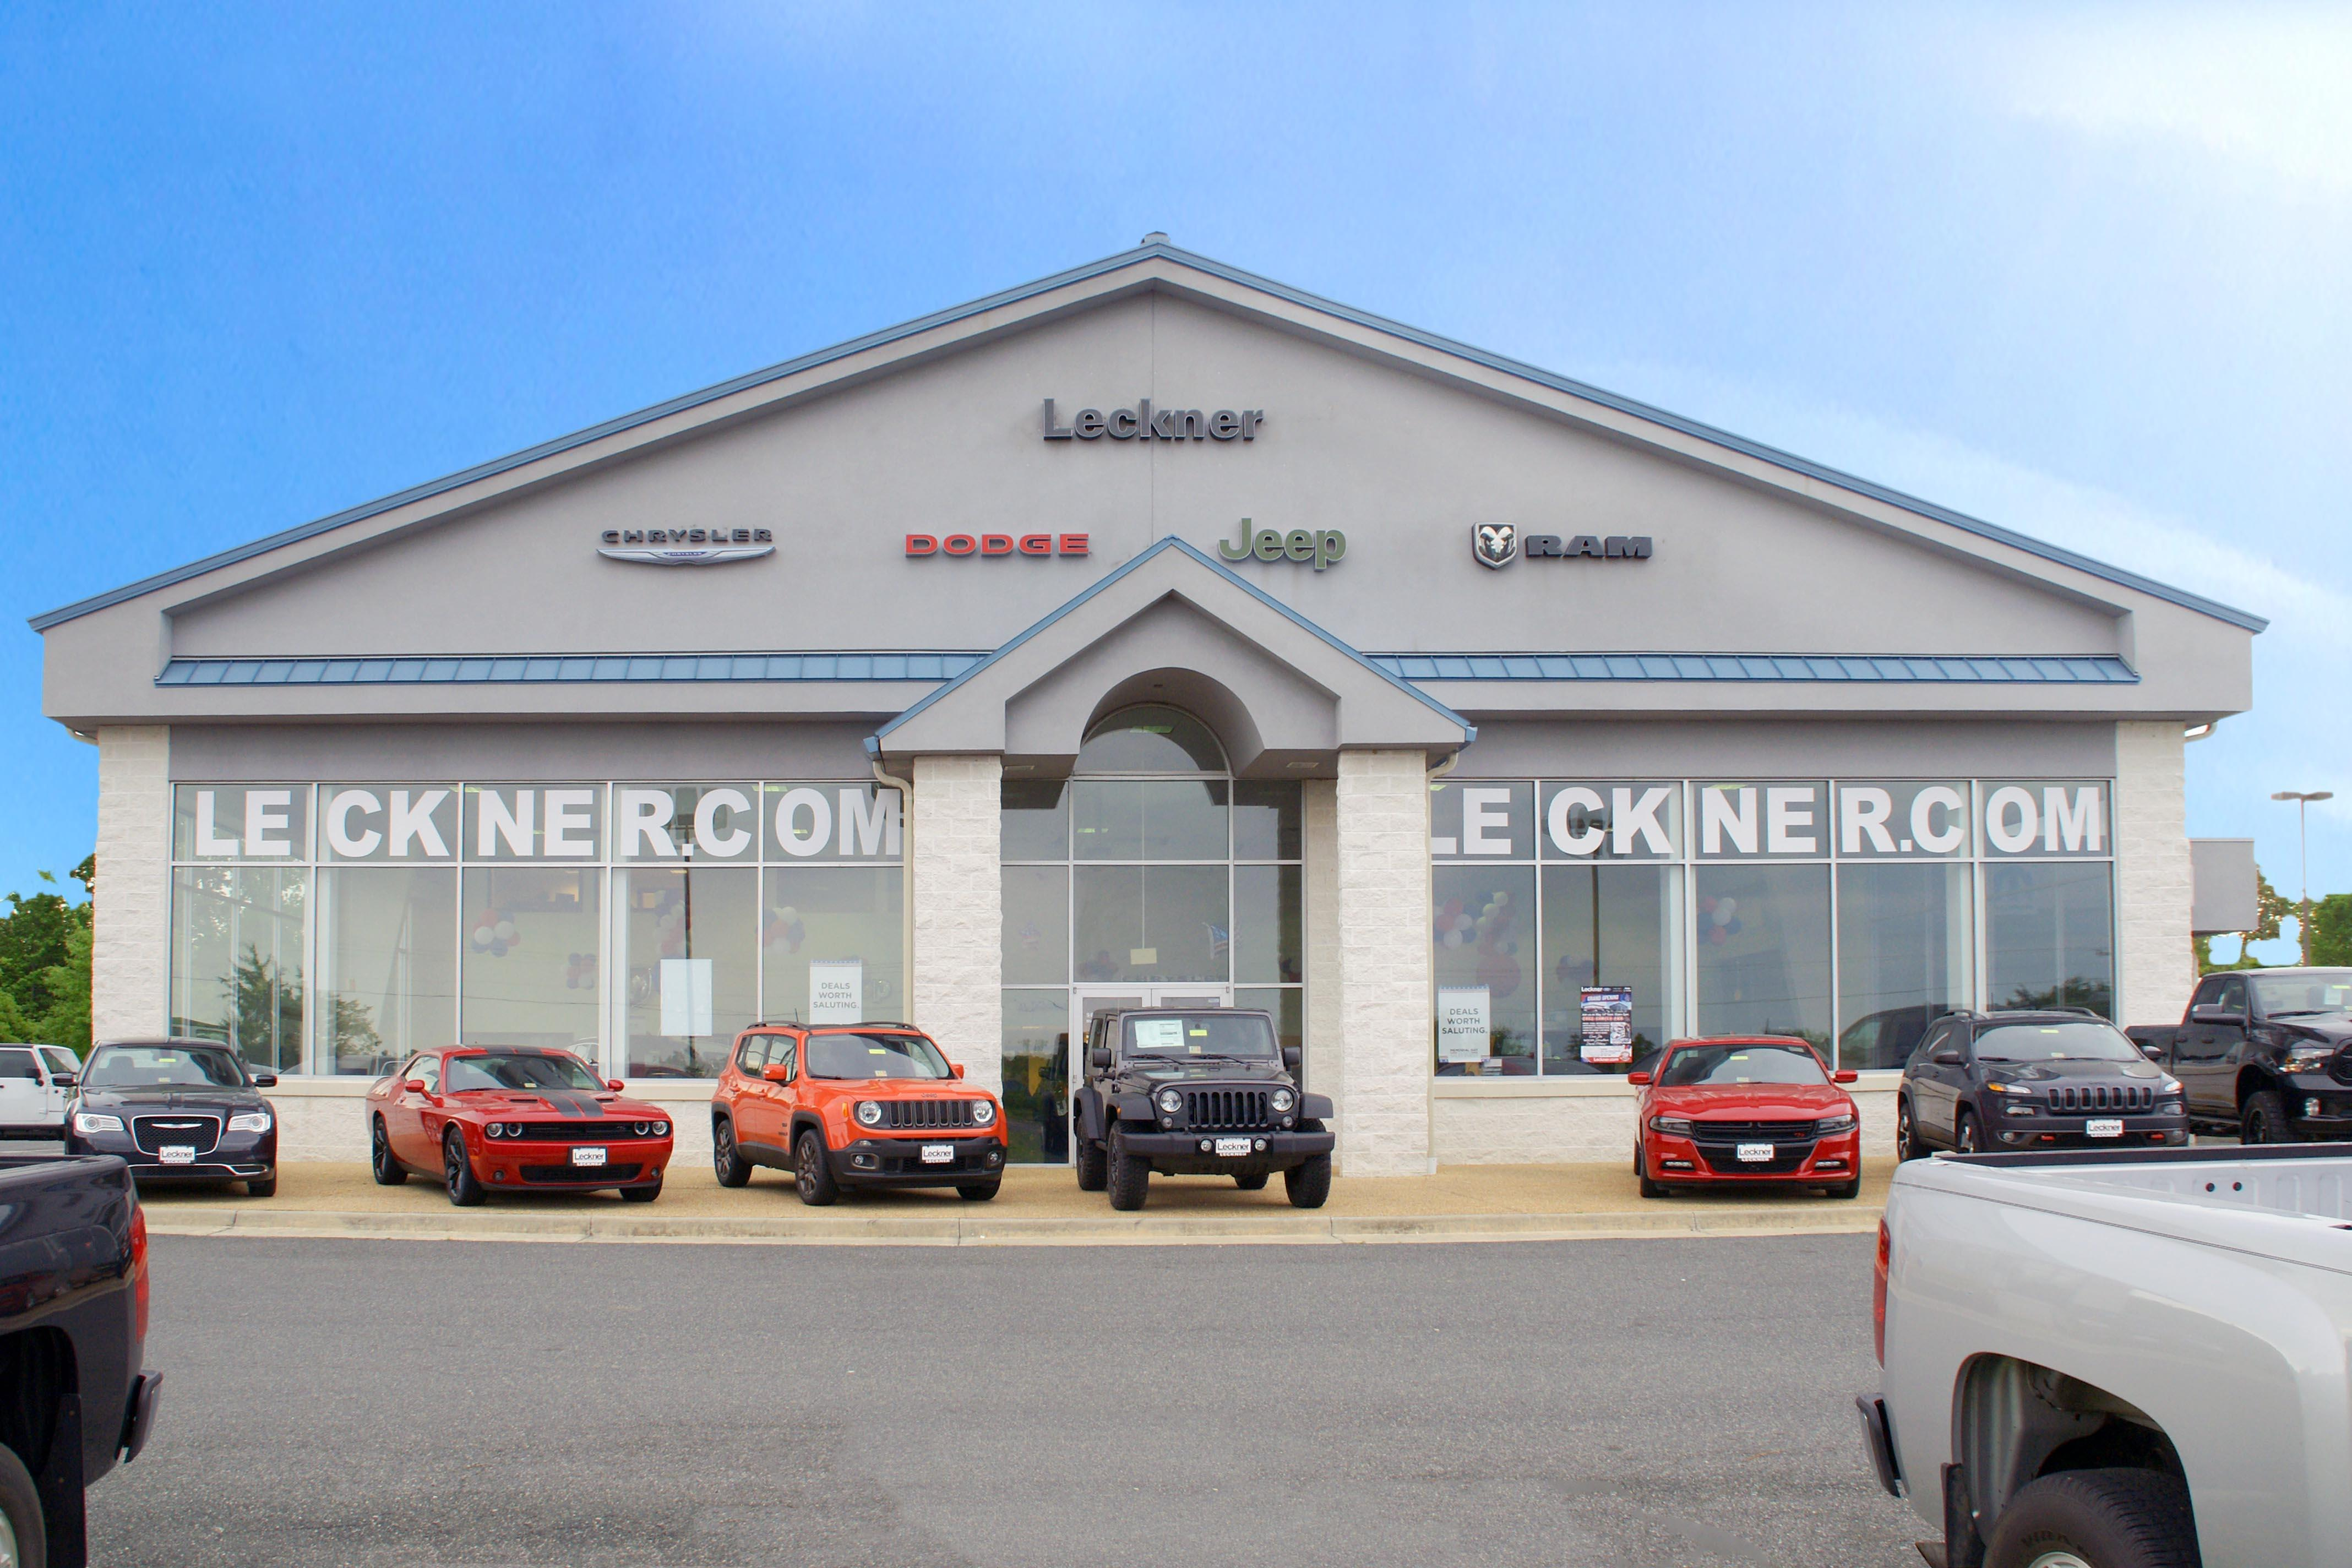 Leckner Chrysler Dodge Jeep Ram Coupons near me in King ...